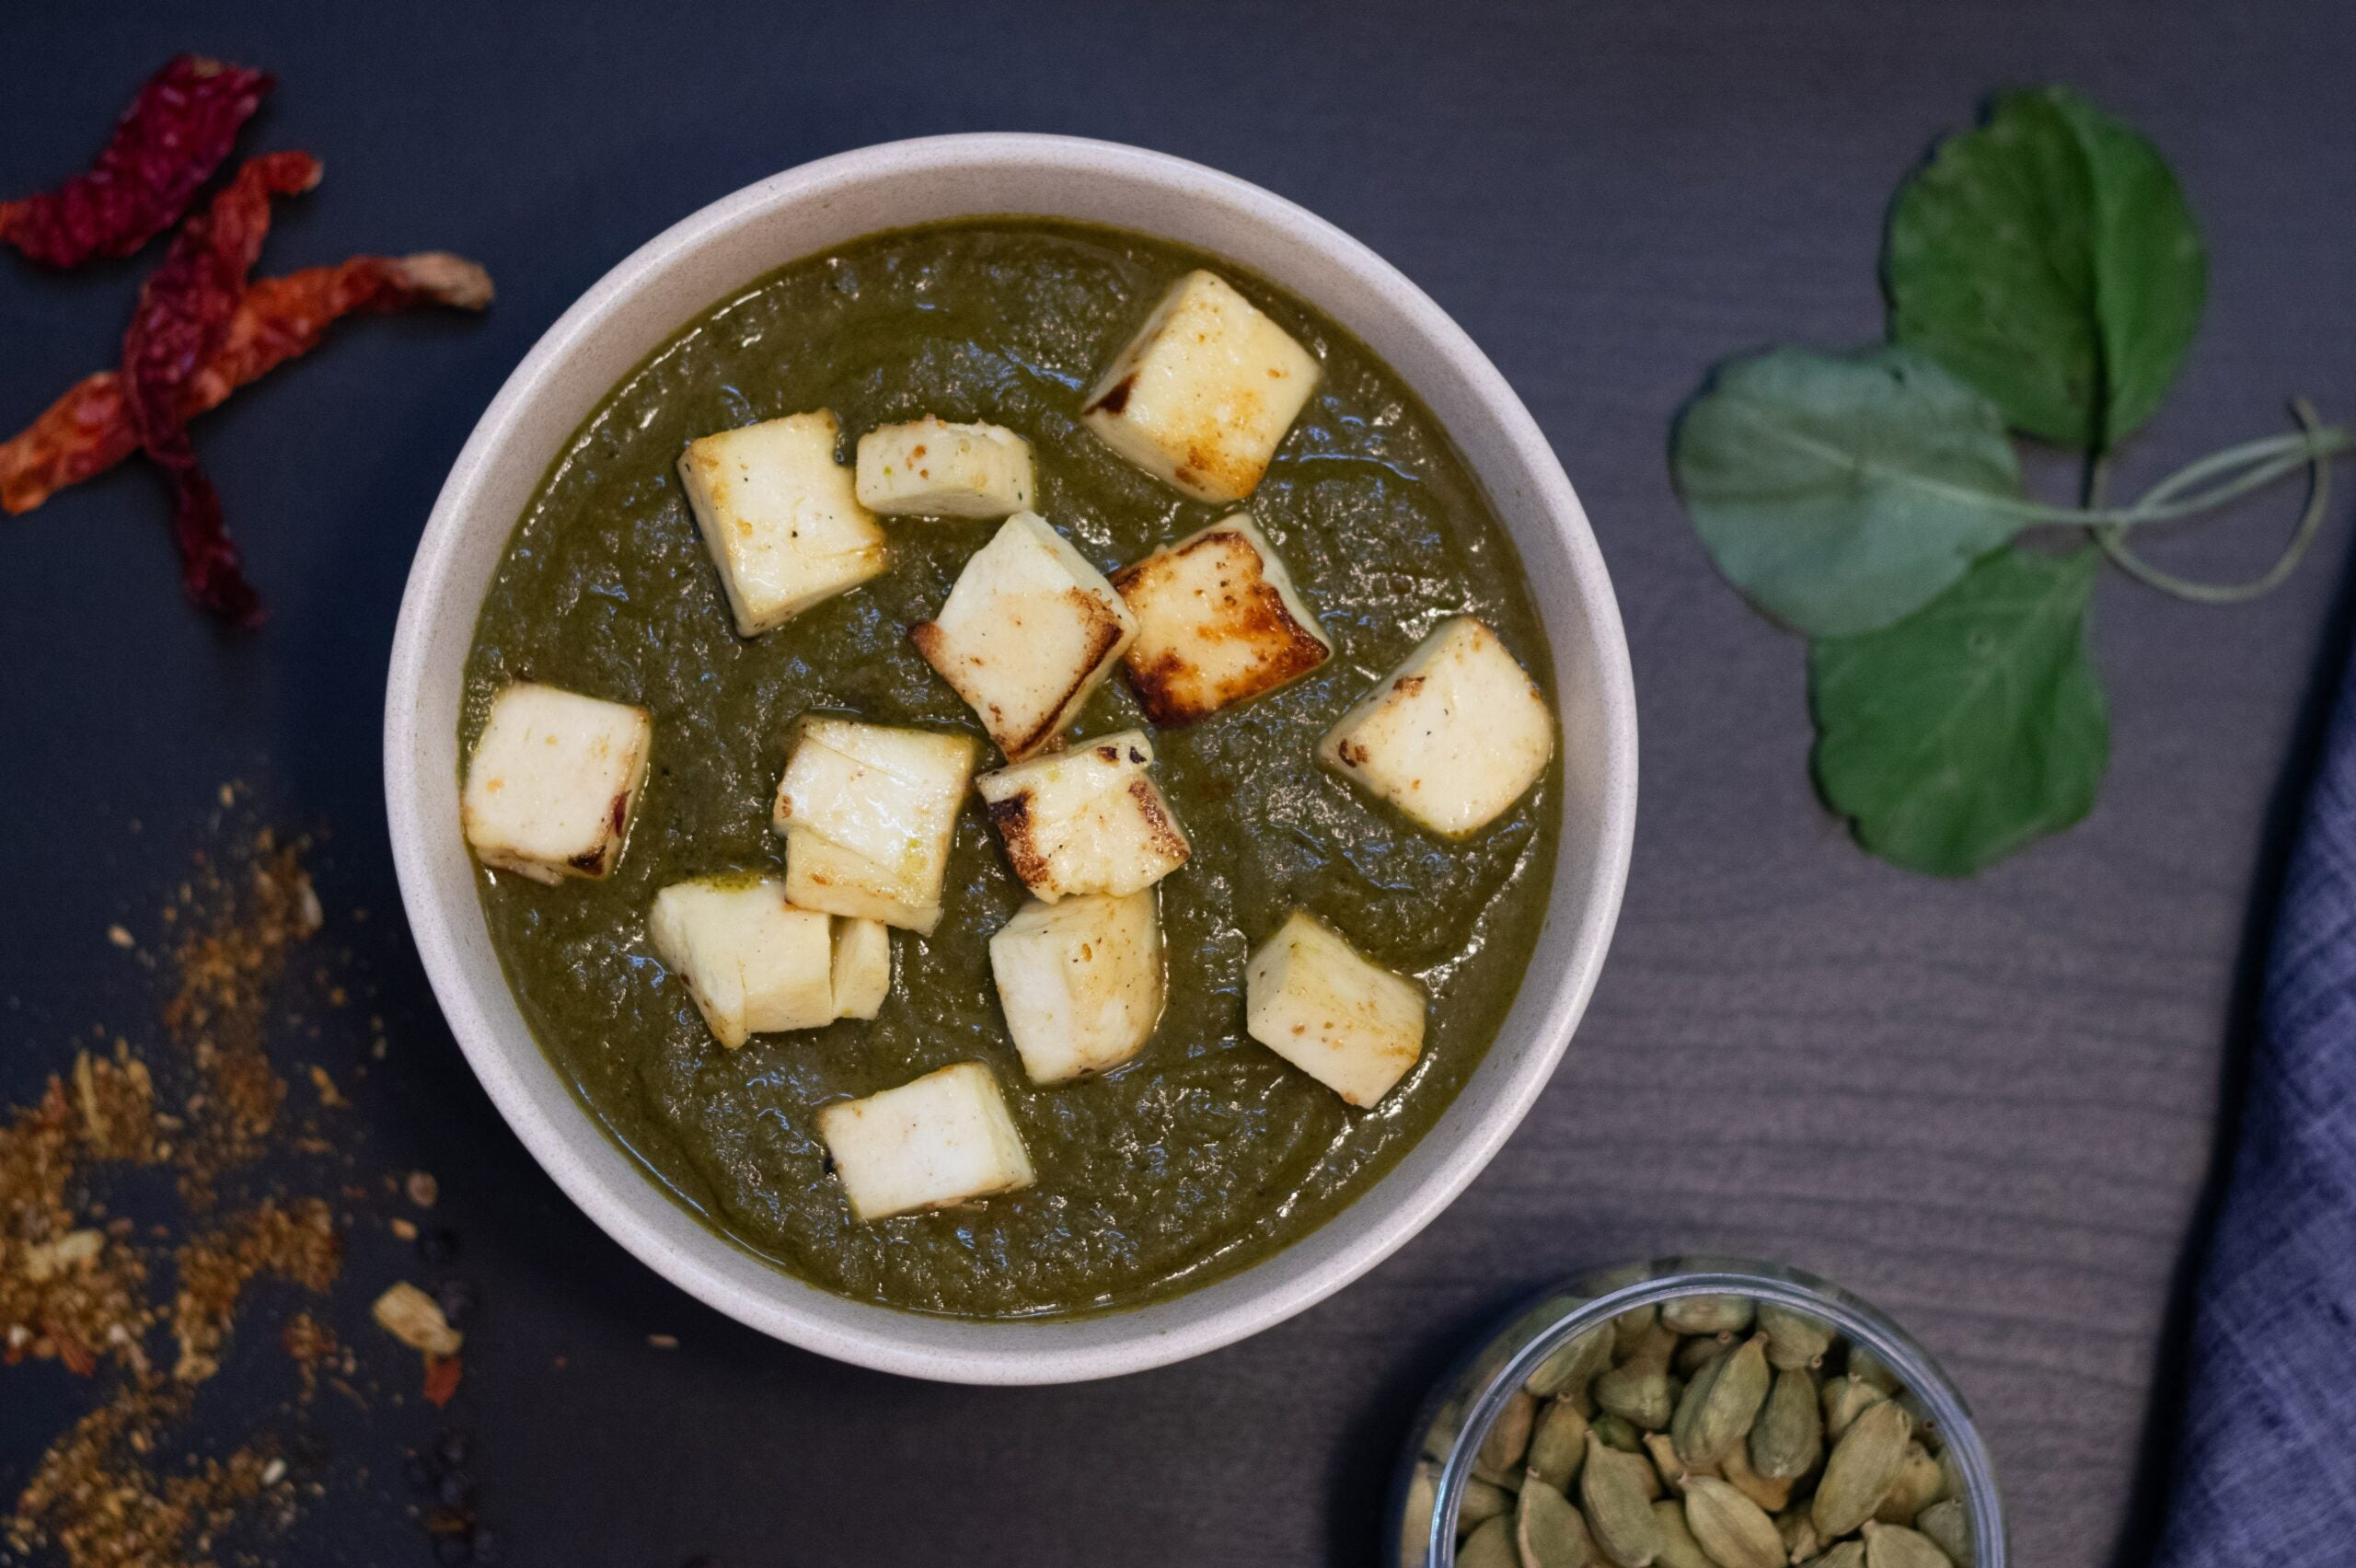 A bowl of saag or spinach paneer